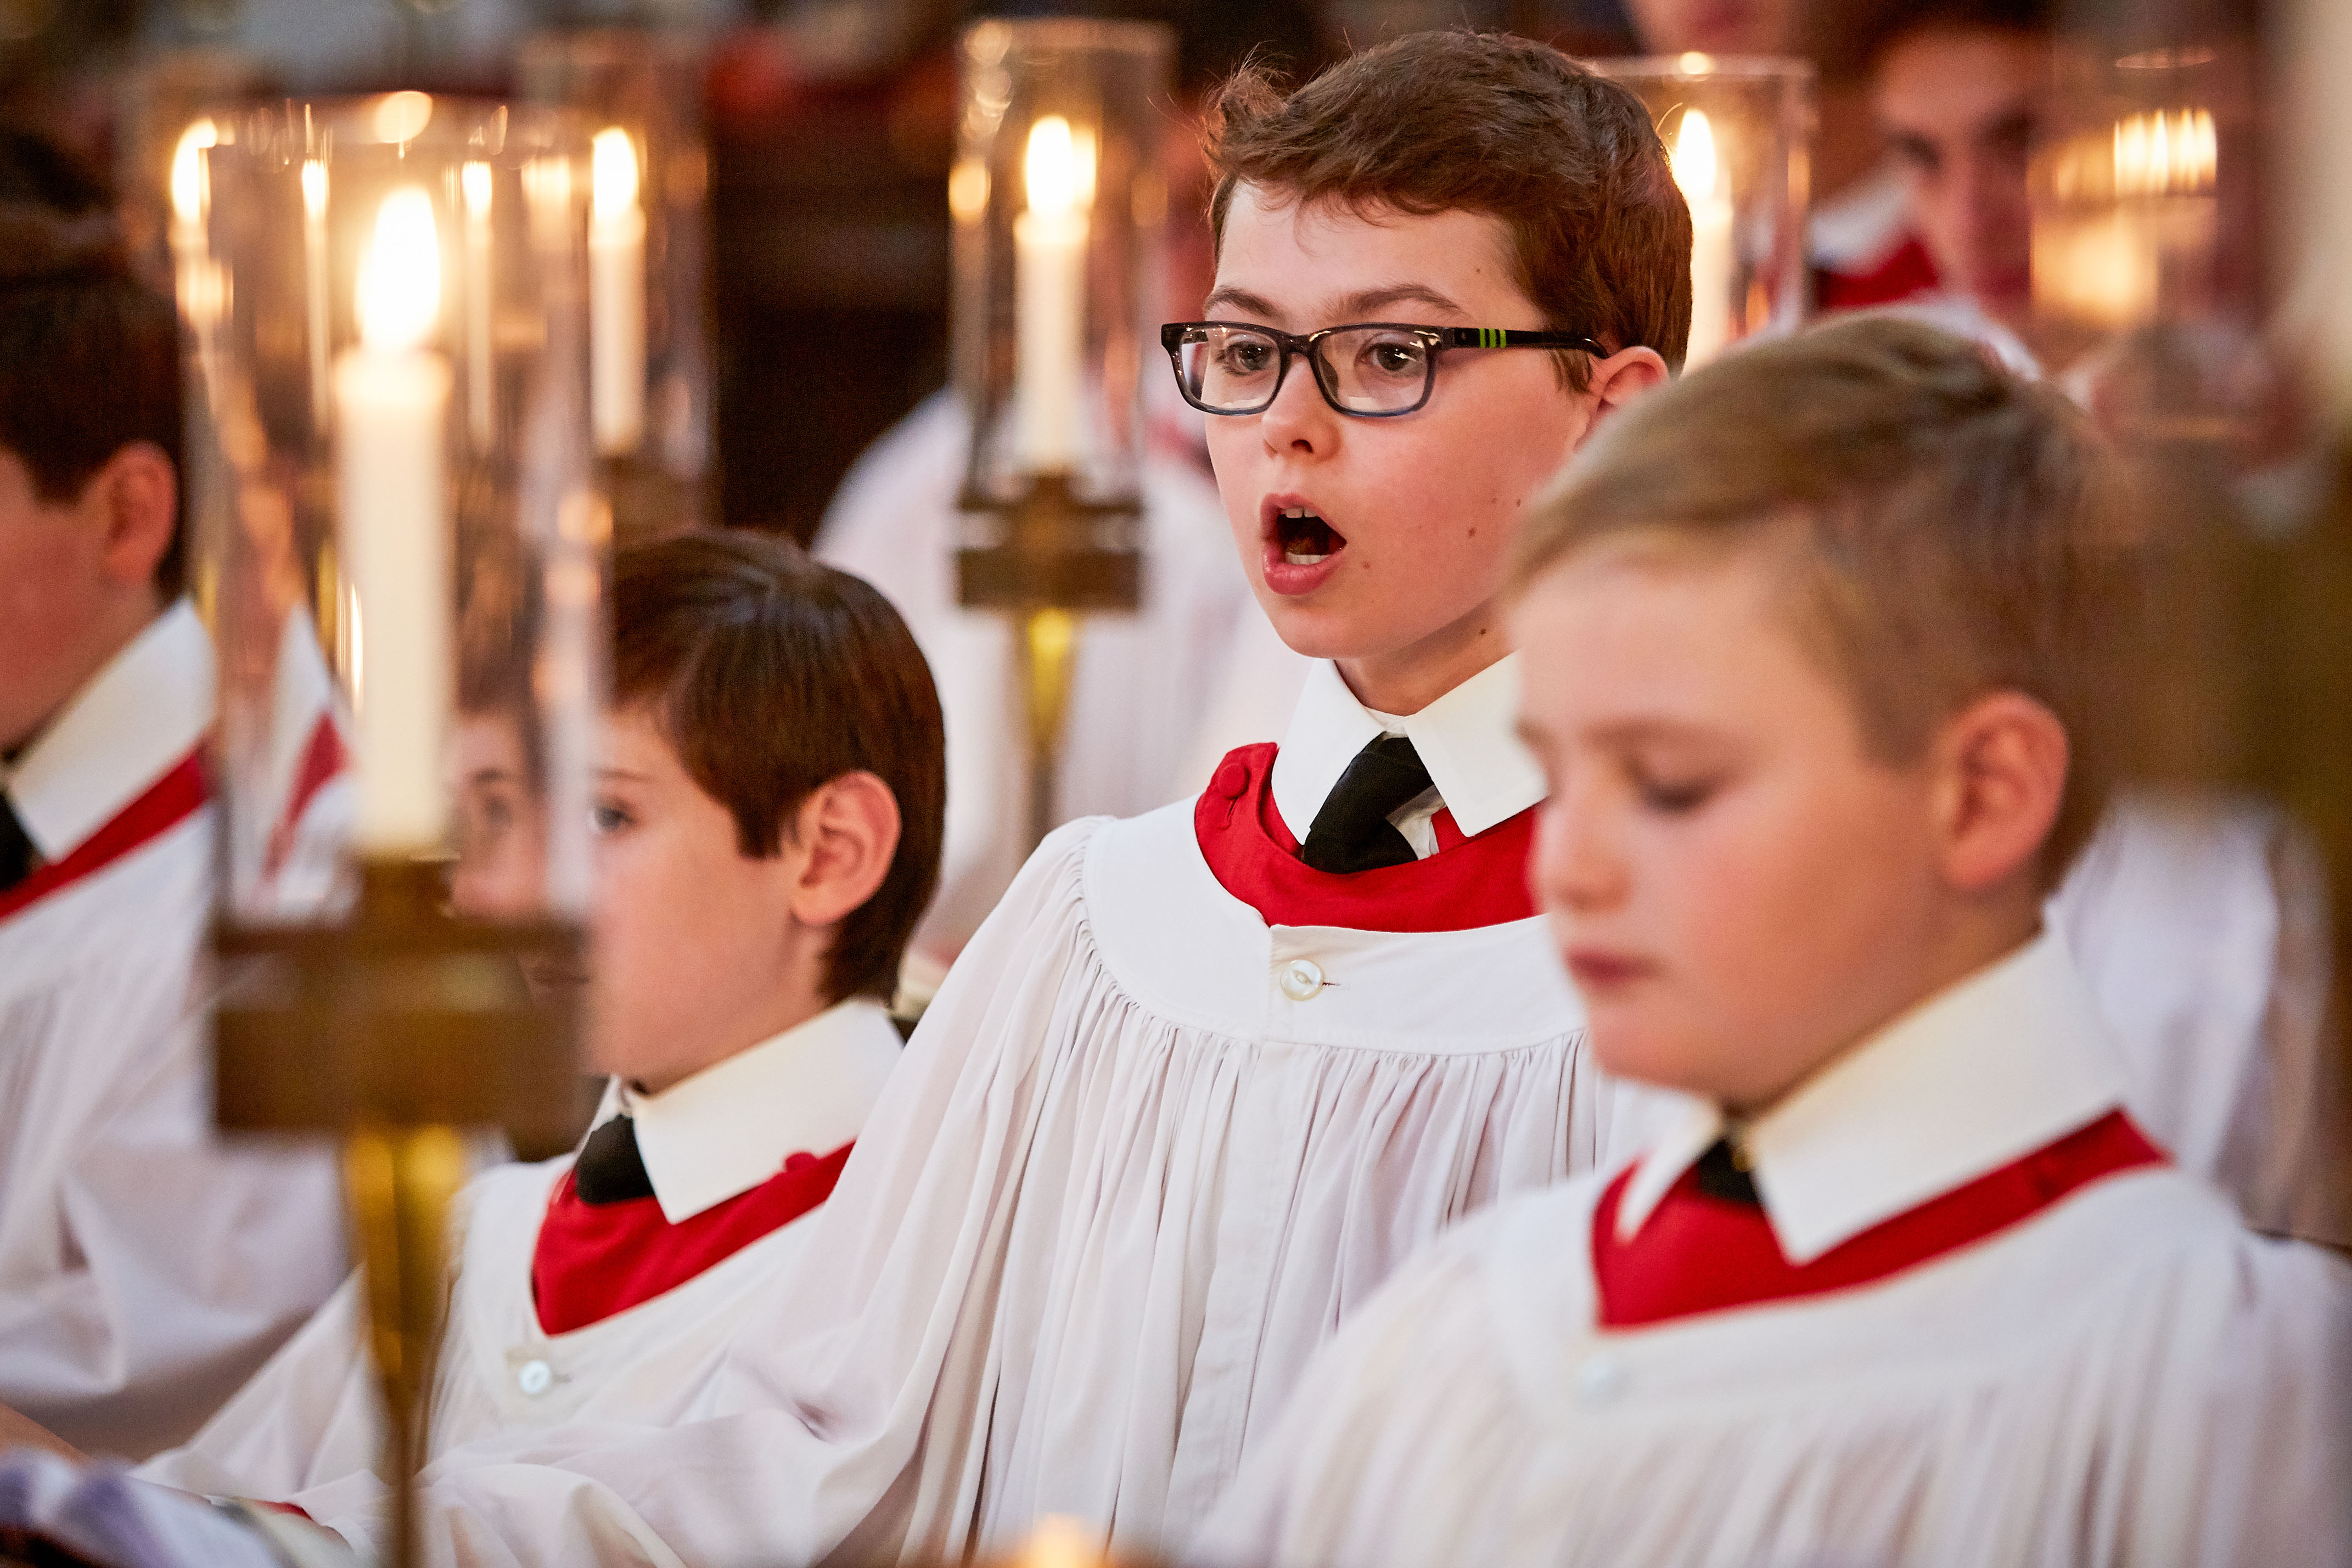 WARNING: Embargoed for publication until 00:00:01 on 28/11/2017 - Programme Name: Carols from Kings 2017 - TX: n/a - Episode: n/a (No. Press Release) - Picture Shows: Kings College Choir *STRICTLY NOT FOR PUBLICATION UNTIL 00:01HRS, TUESDAY 28TH NOVEMBER, 2017* - (C) Kevin Leighton - Photographer: Kevin Leighton